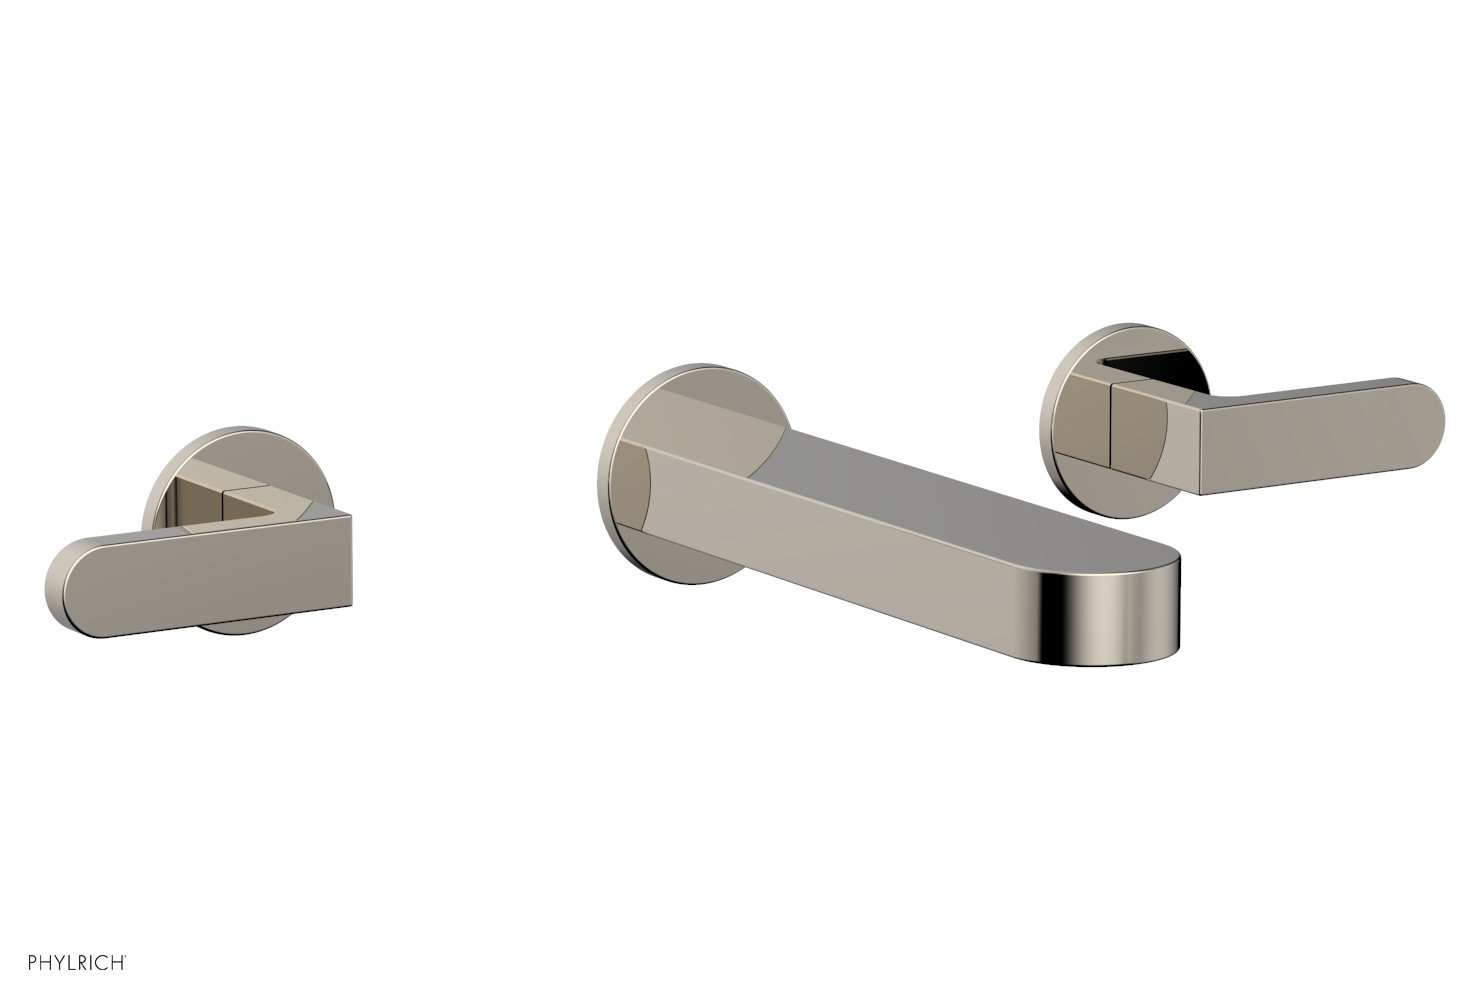 Phylrich 183-12-014 ROND Wall Lavatory Set - Lever Handles - Polished Nickel